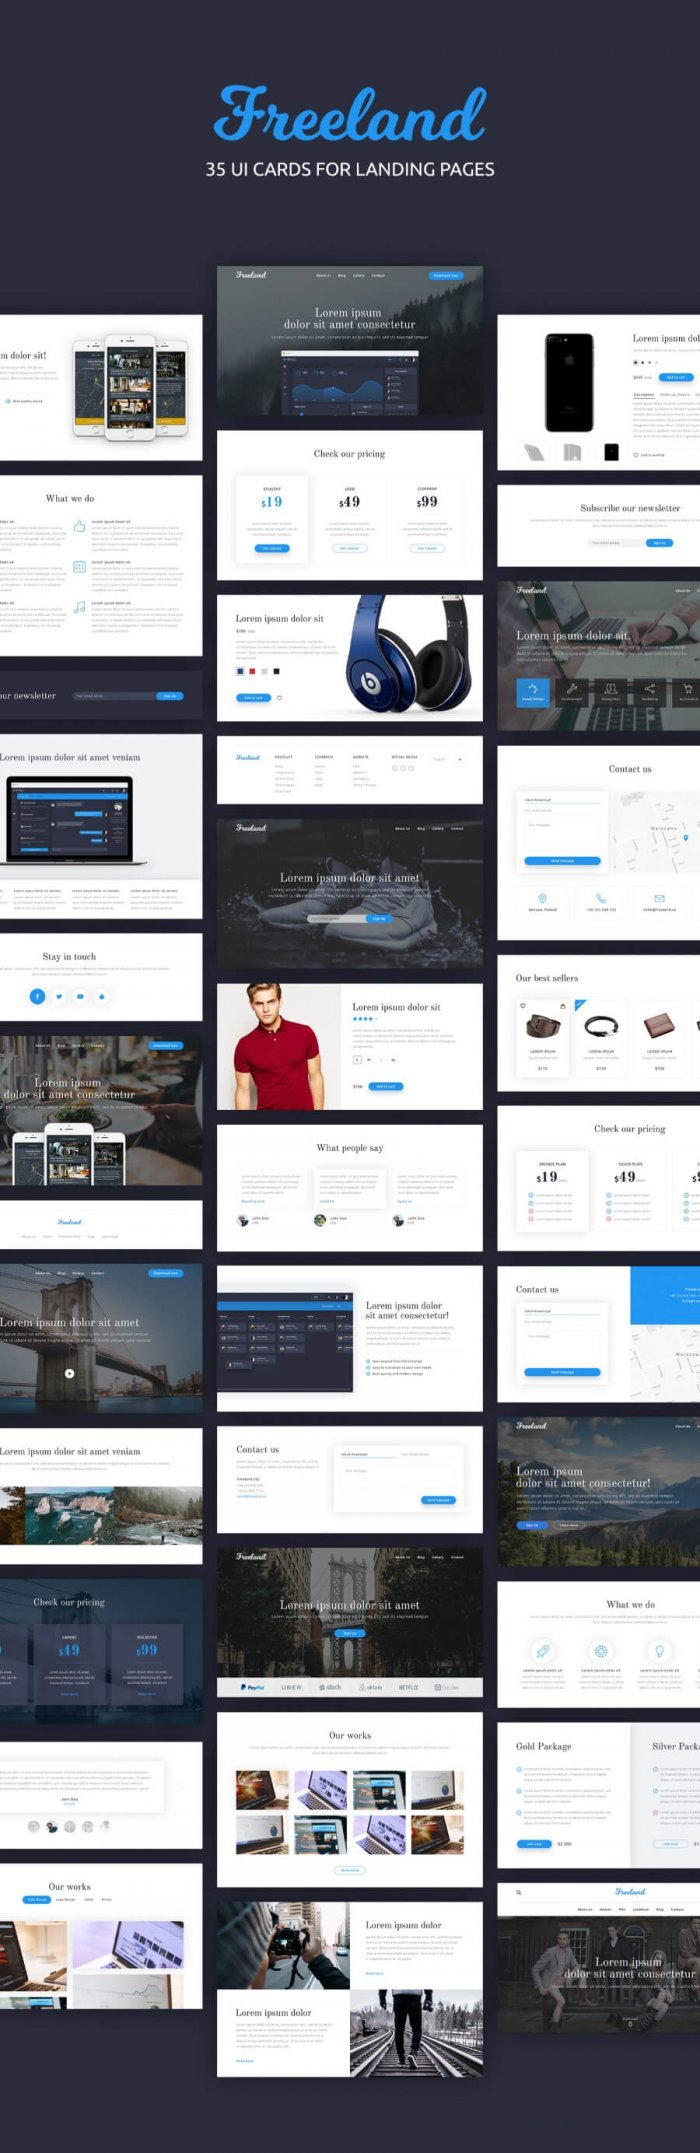 Freeland 35 Landing Pages UI Kit (.Psd) скачать бесплатно